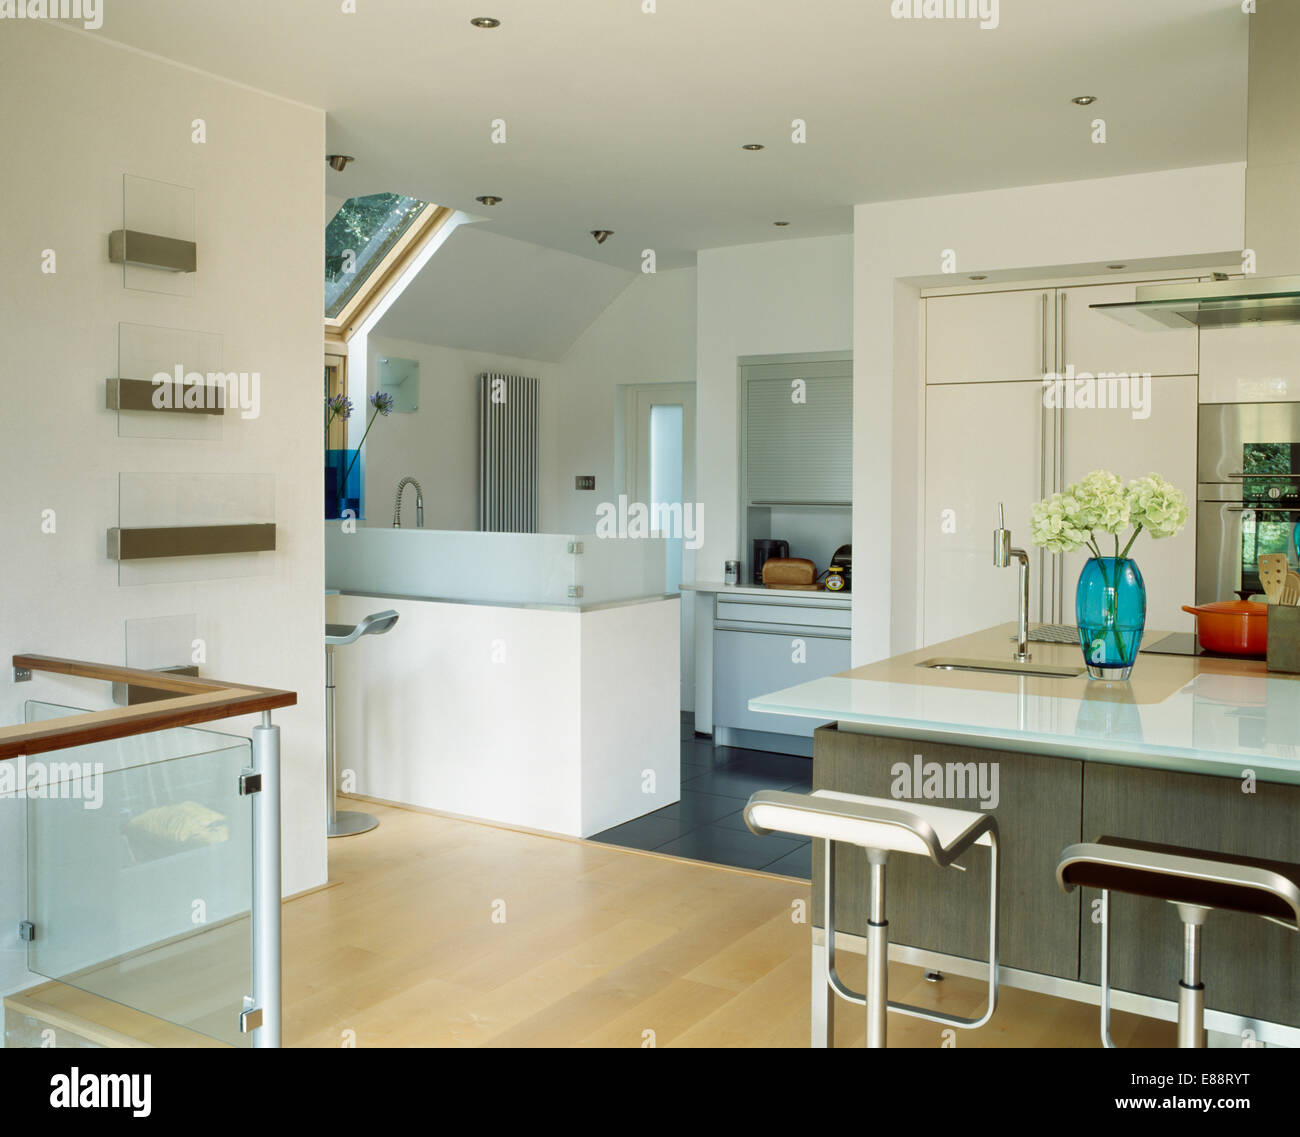 Extension Kitchen Stools At Breakfast Bar In Modern White Kitchen Extension With